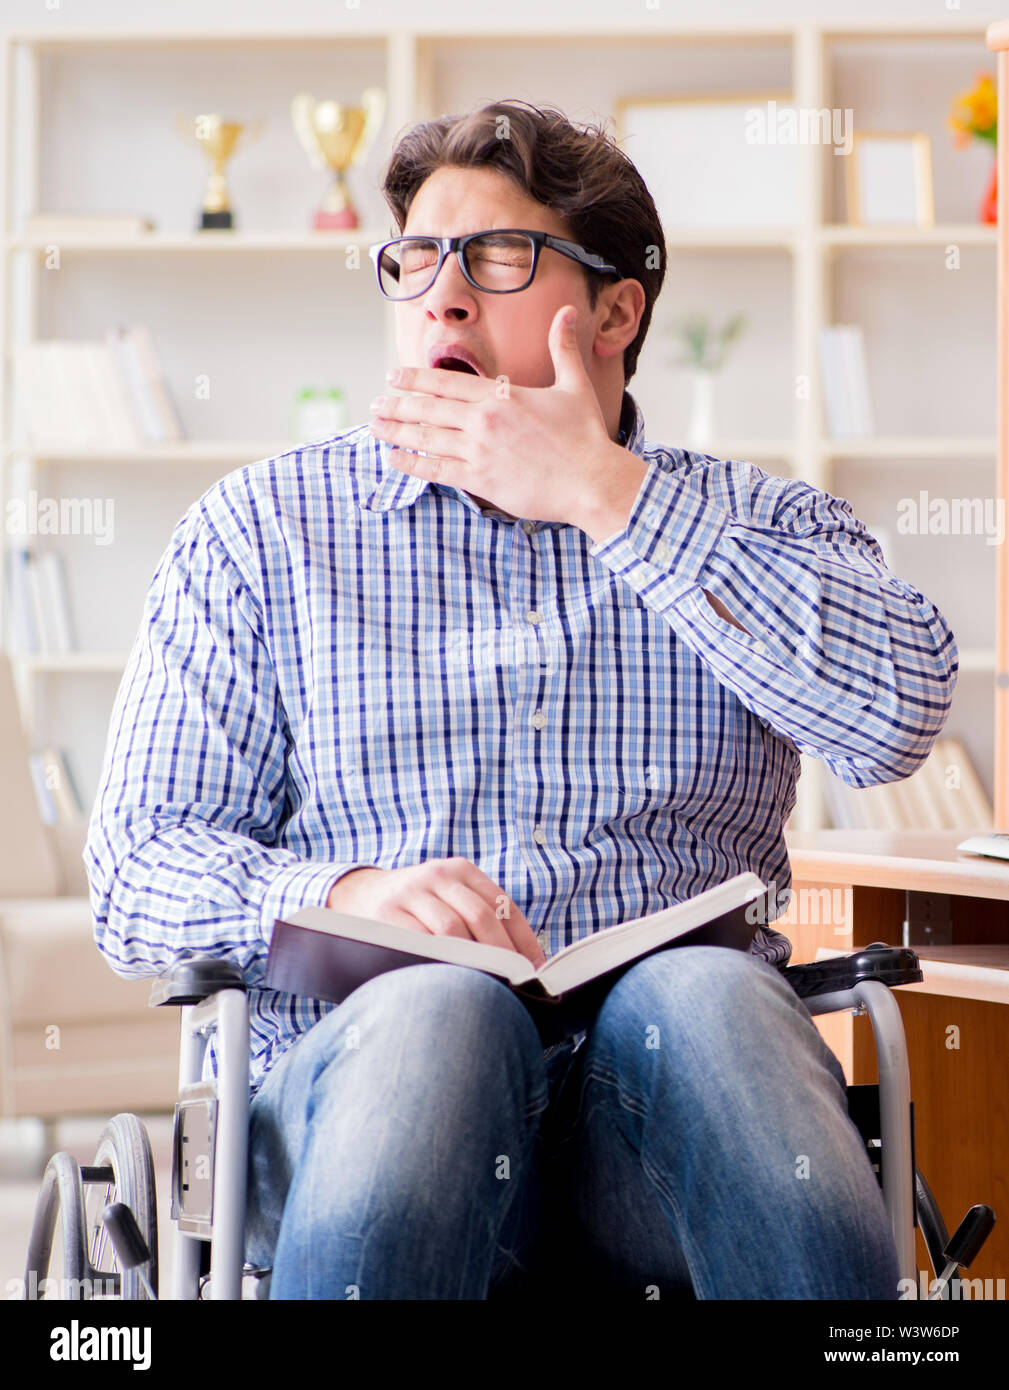 The disabled student studying at home on wheelchair - Stock Image